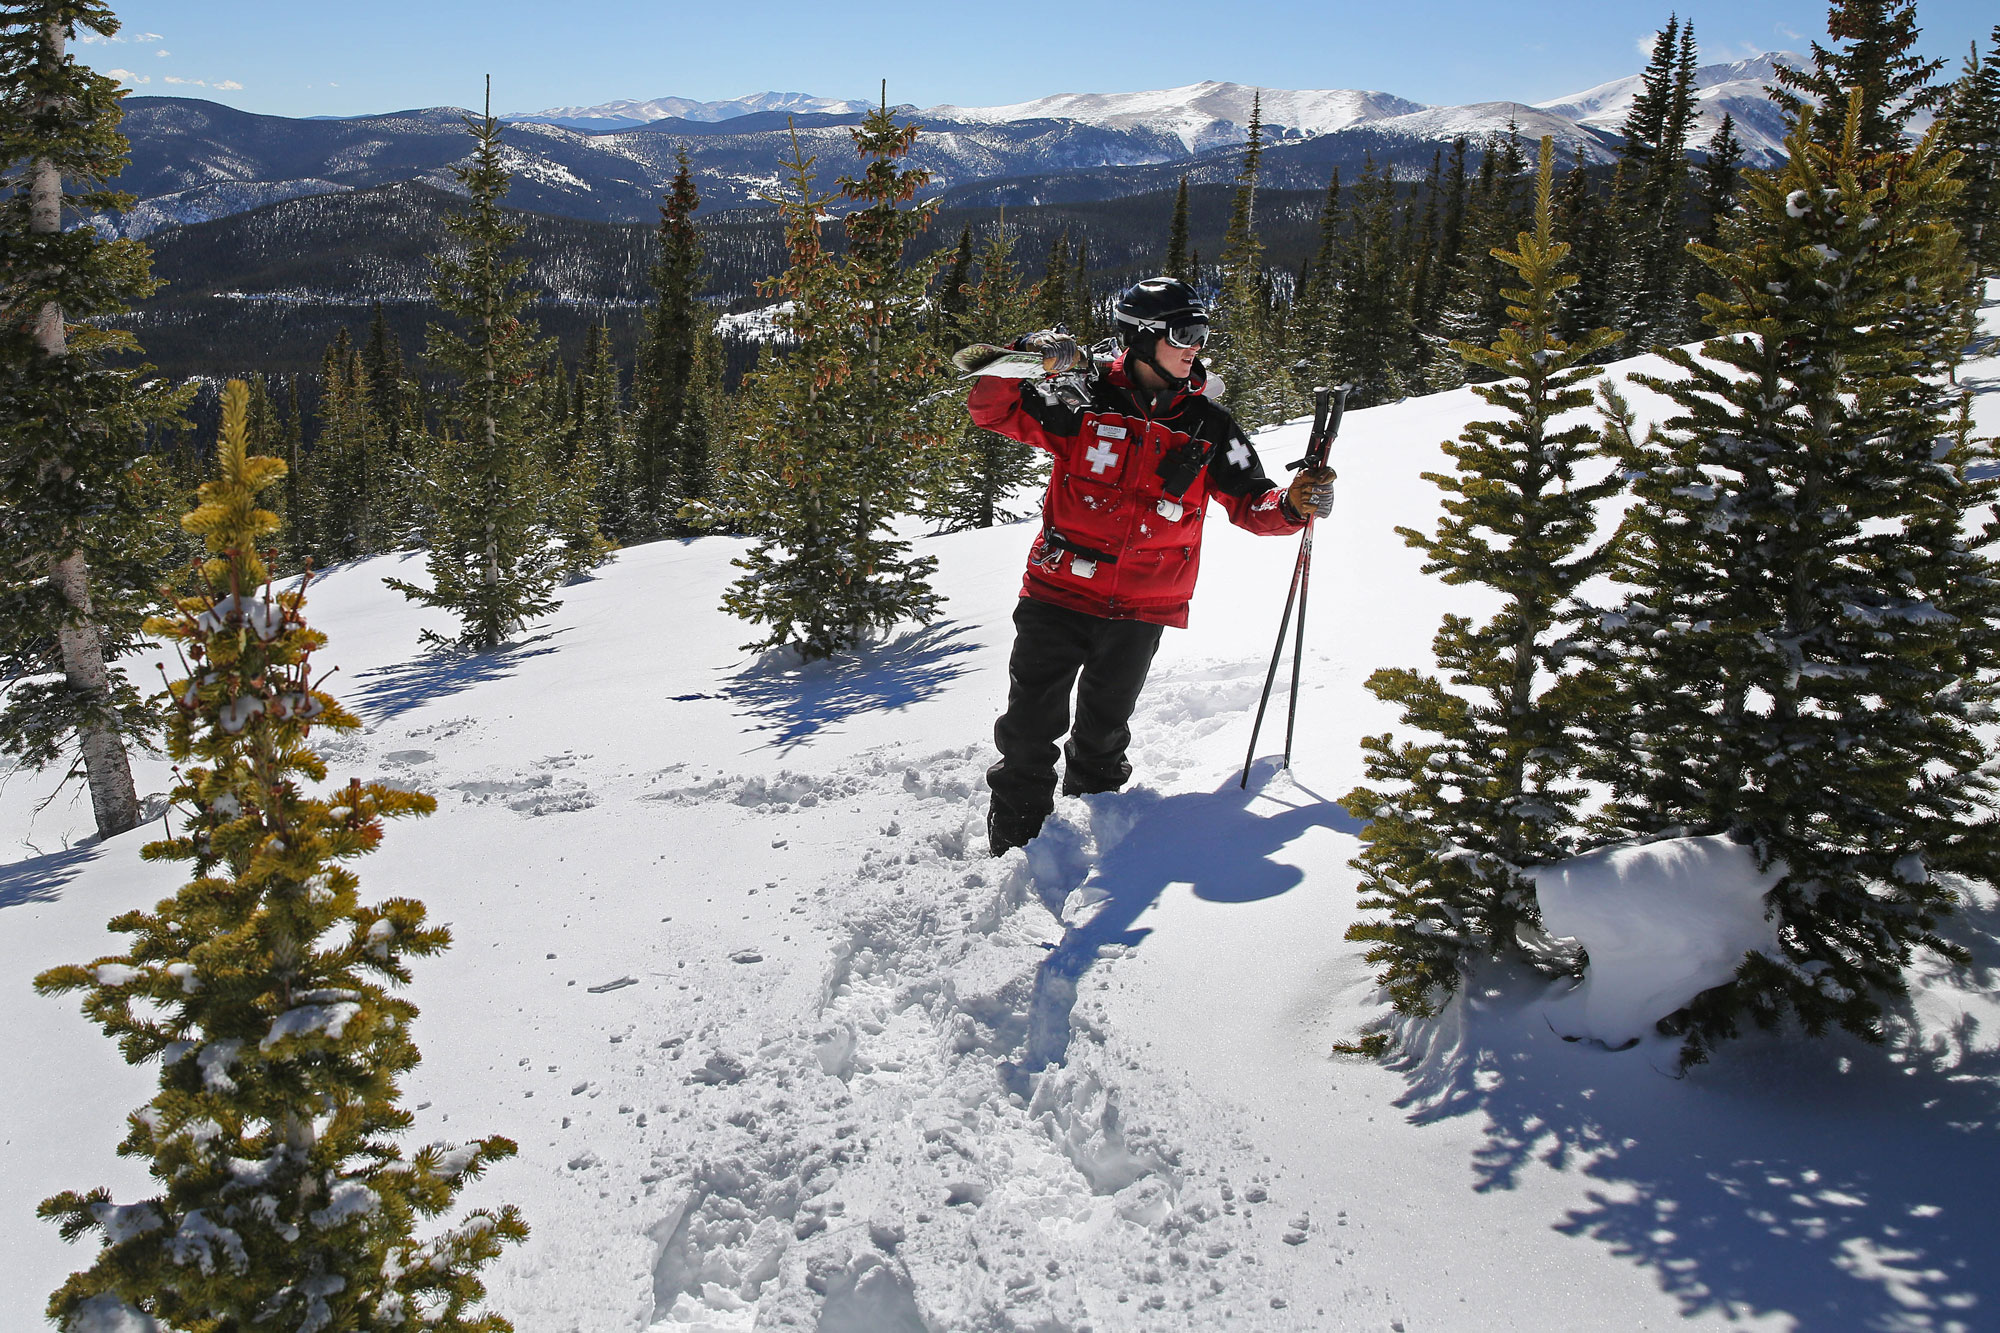 Eldora ski patroller Adam Clifton checks the density of the snow pack in a backcountry area of National Forest land adjacent to Corona Bowl, known for its extreme skiing, at Eldora Mountain Resort, near Nederland, Colo., Wednesday, Feb. 26, 2014.